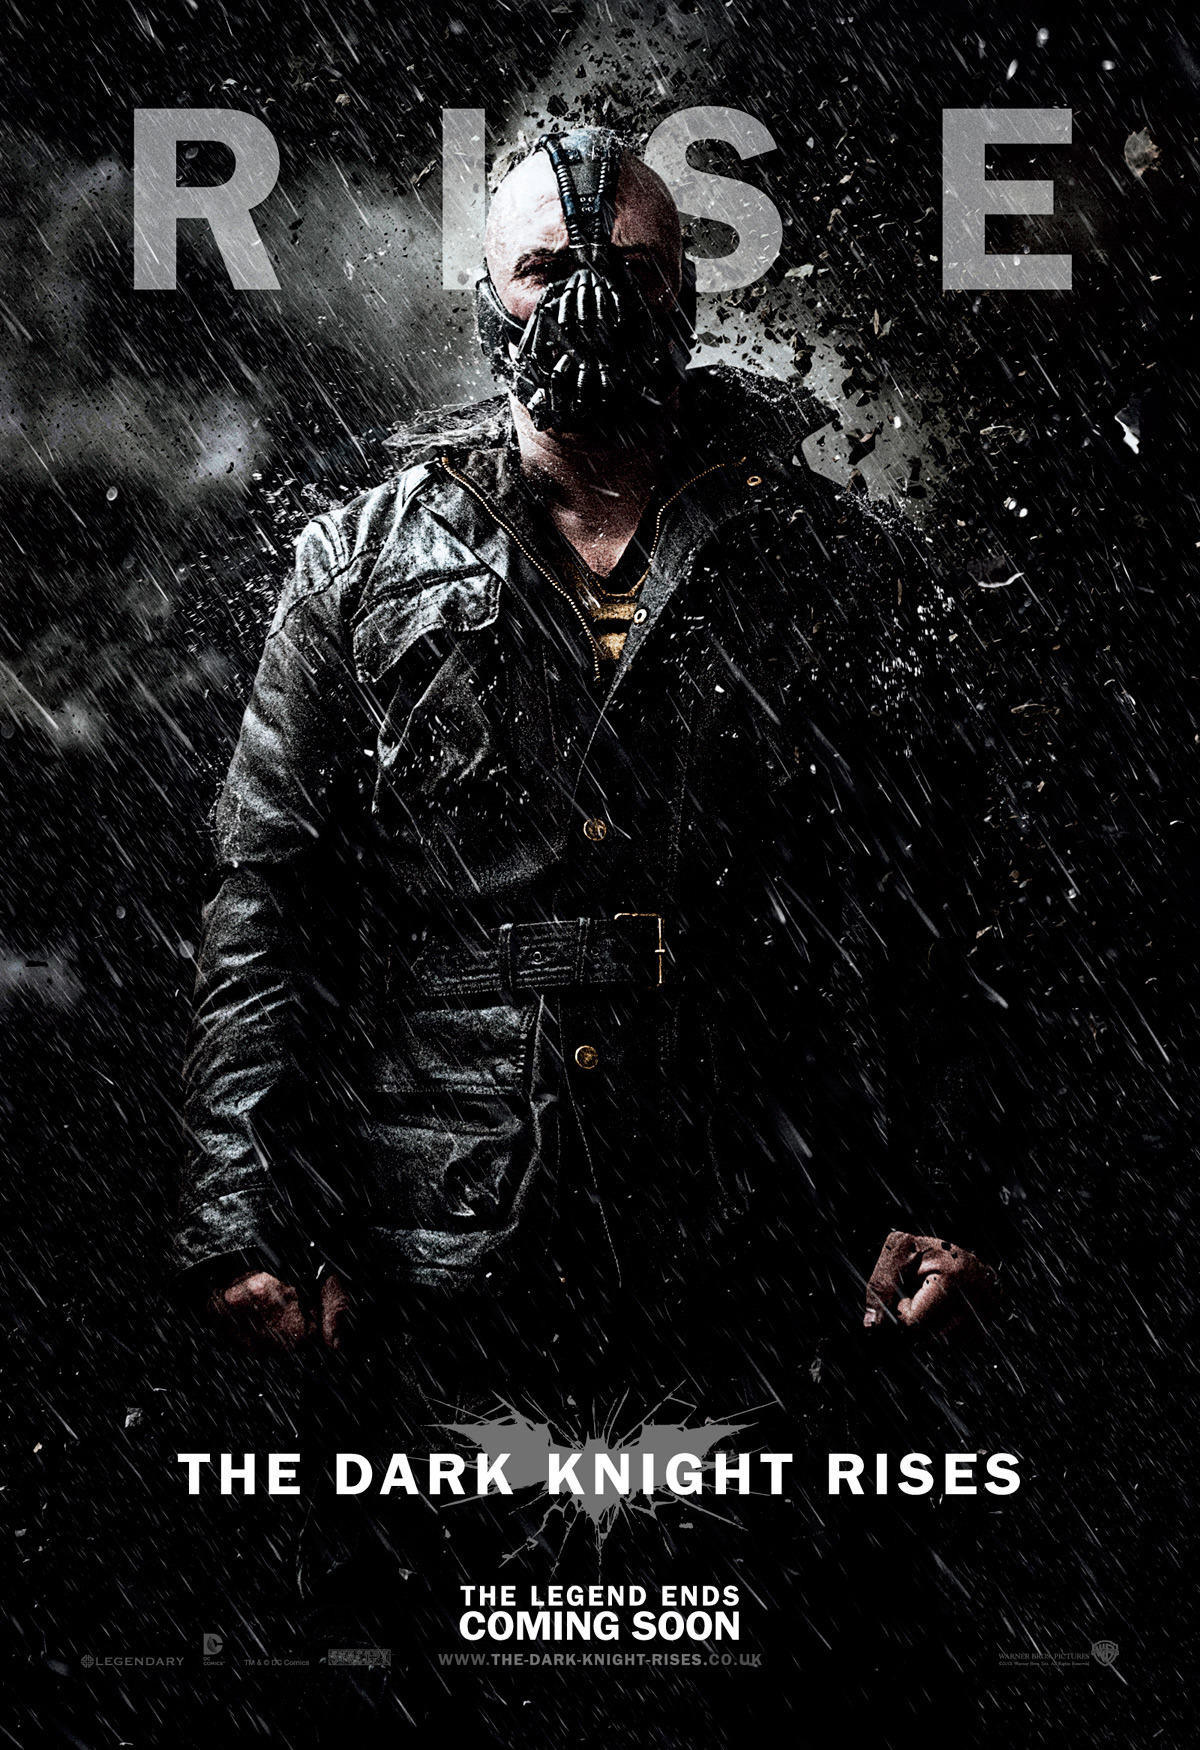 Dark Knight Rises posters